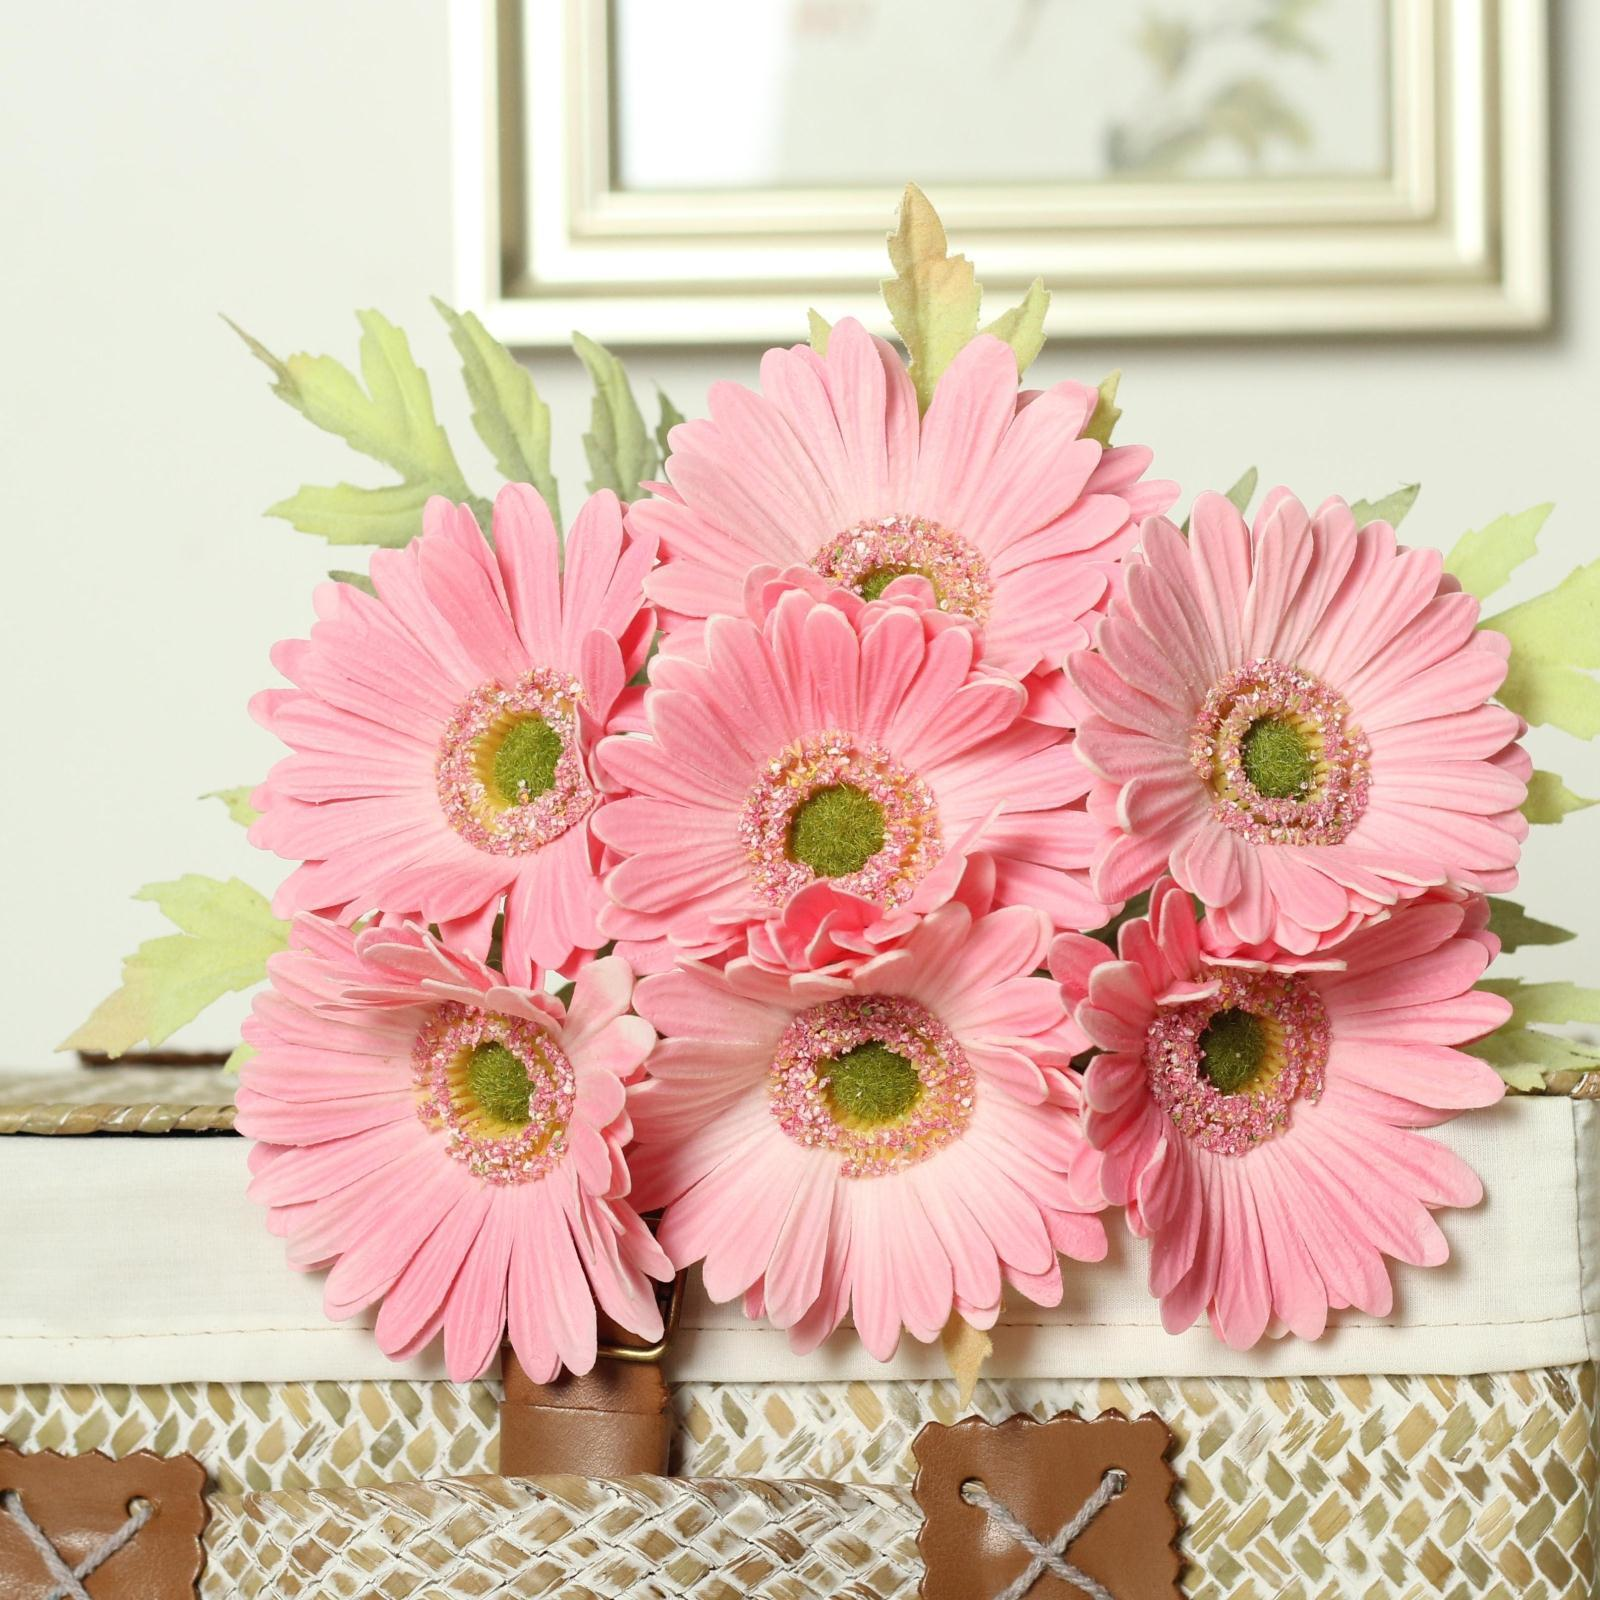 2017 gerbera flower bouquets daisy artificial sunflower for bridal bouquet wedding home decor real touch pu gerbera daisy decorative flower from rogerlin - Home Decor Flowers